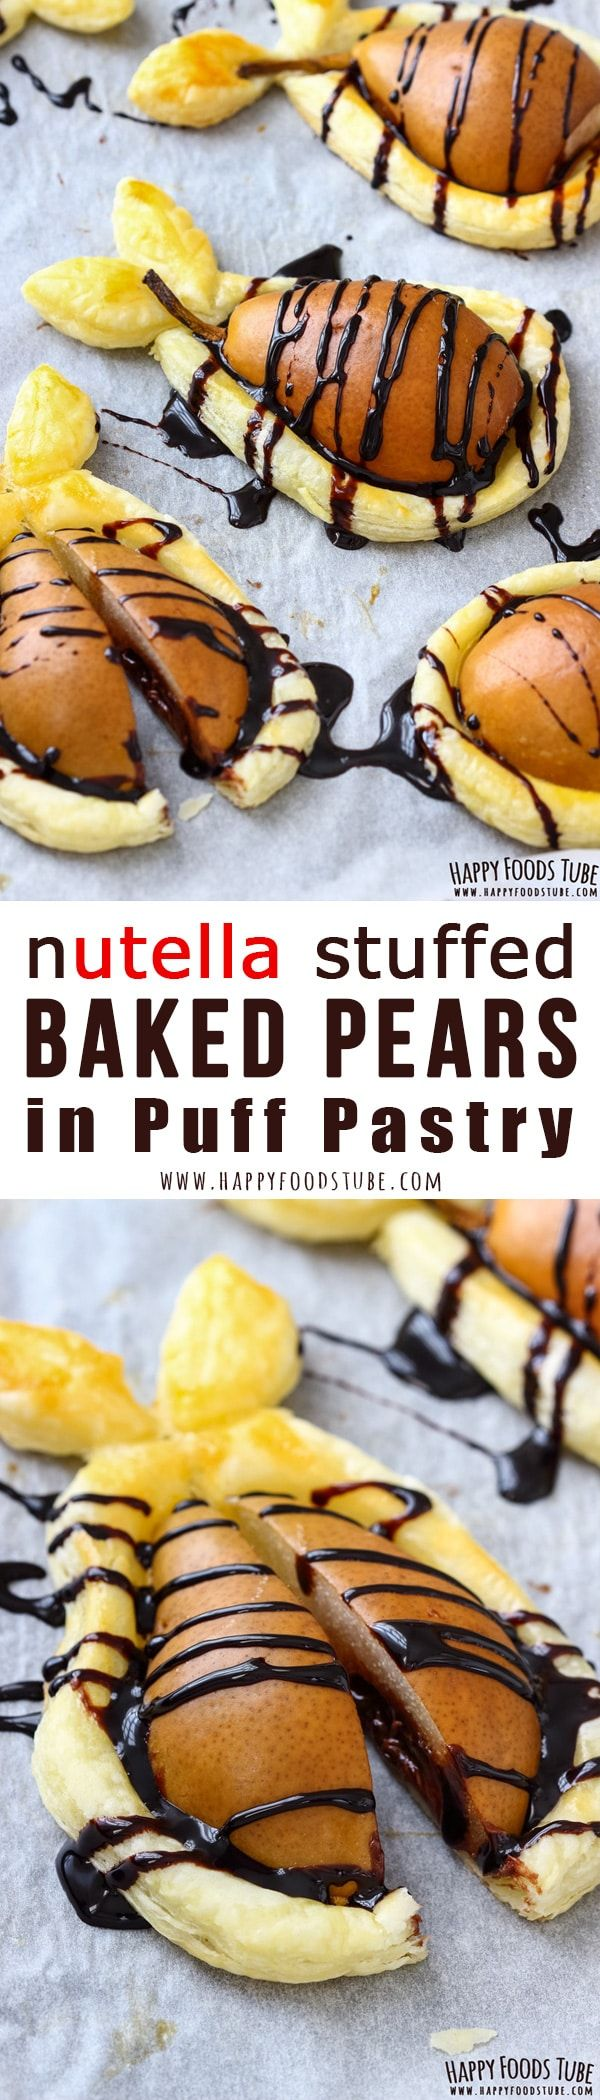 Wow your guests with Nutella stuffed baked pears in puff pastry. This easy fall dessert is ready in less than 30 minutes and requires only 5 ingredients. #dessert #nutella #pears #puffpastry #recipe via @happyfoodstube